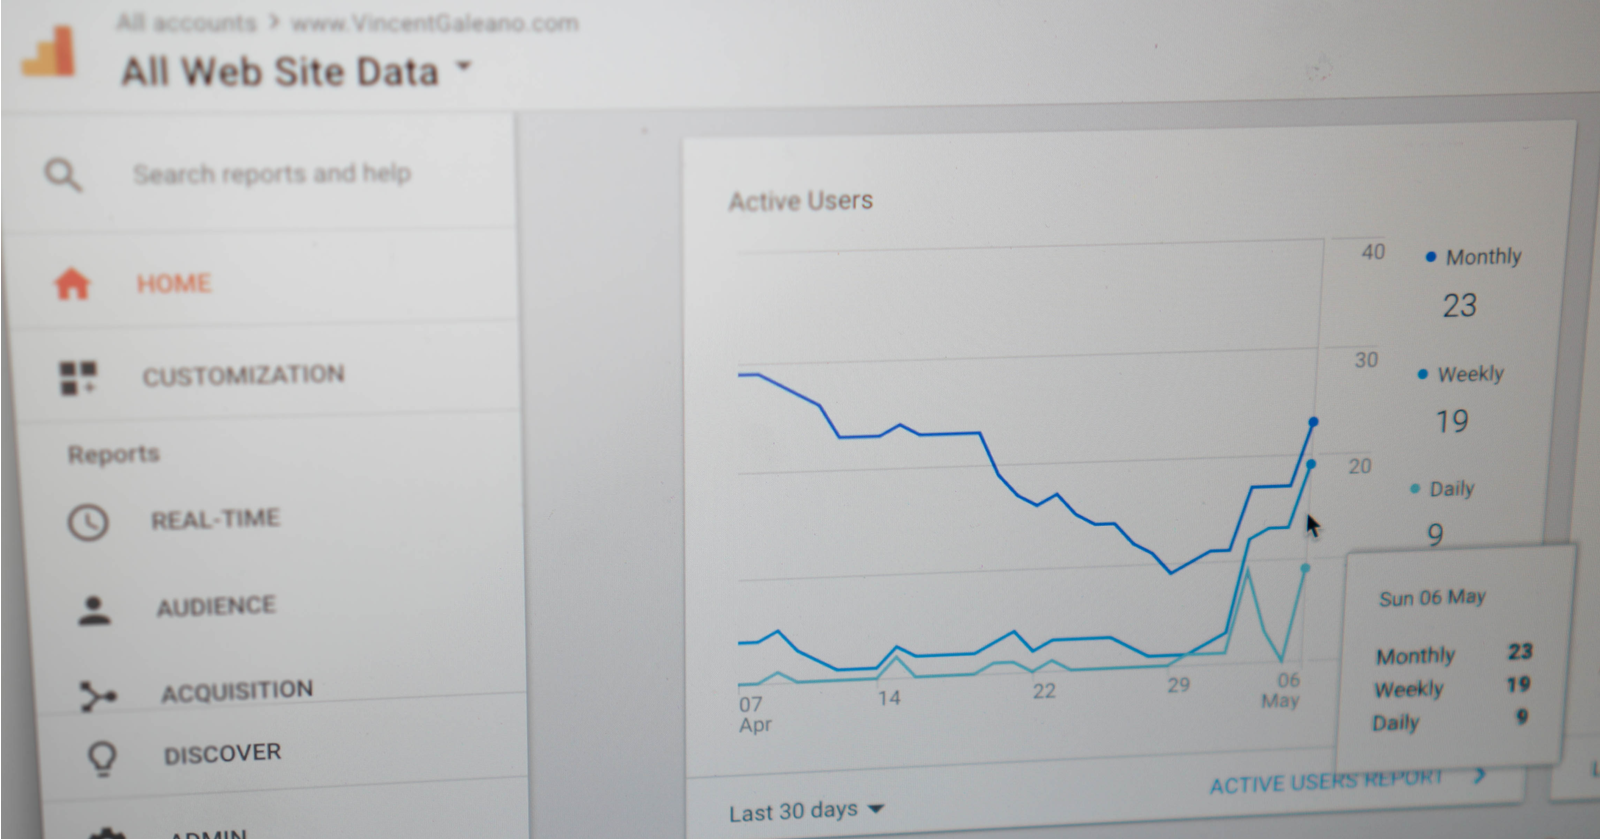 searchenginejournal.com - Natalie Hoben - 5 Useful SEO Insights You Can Learn from Google Analytics